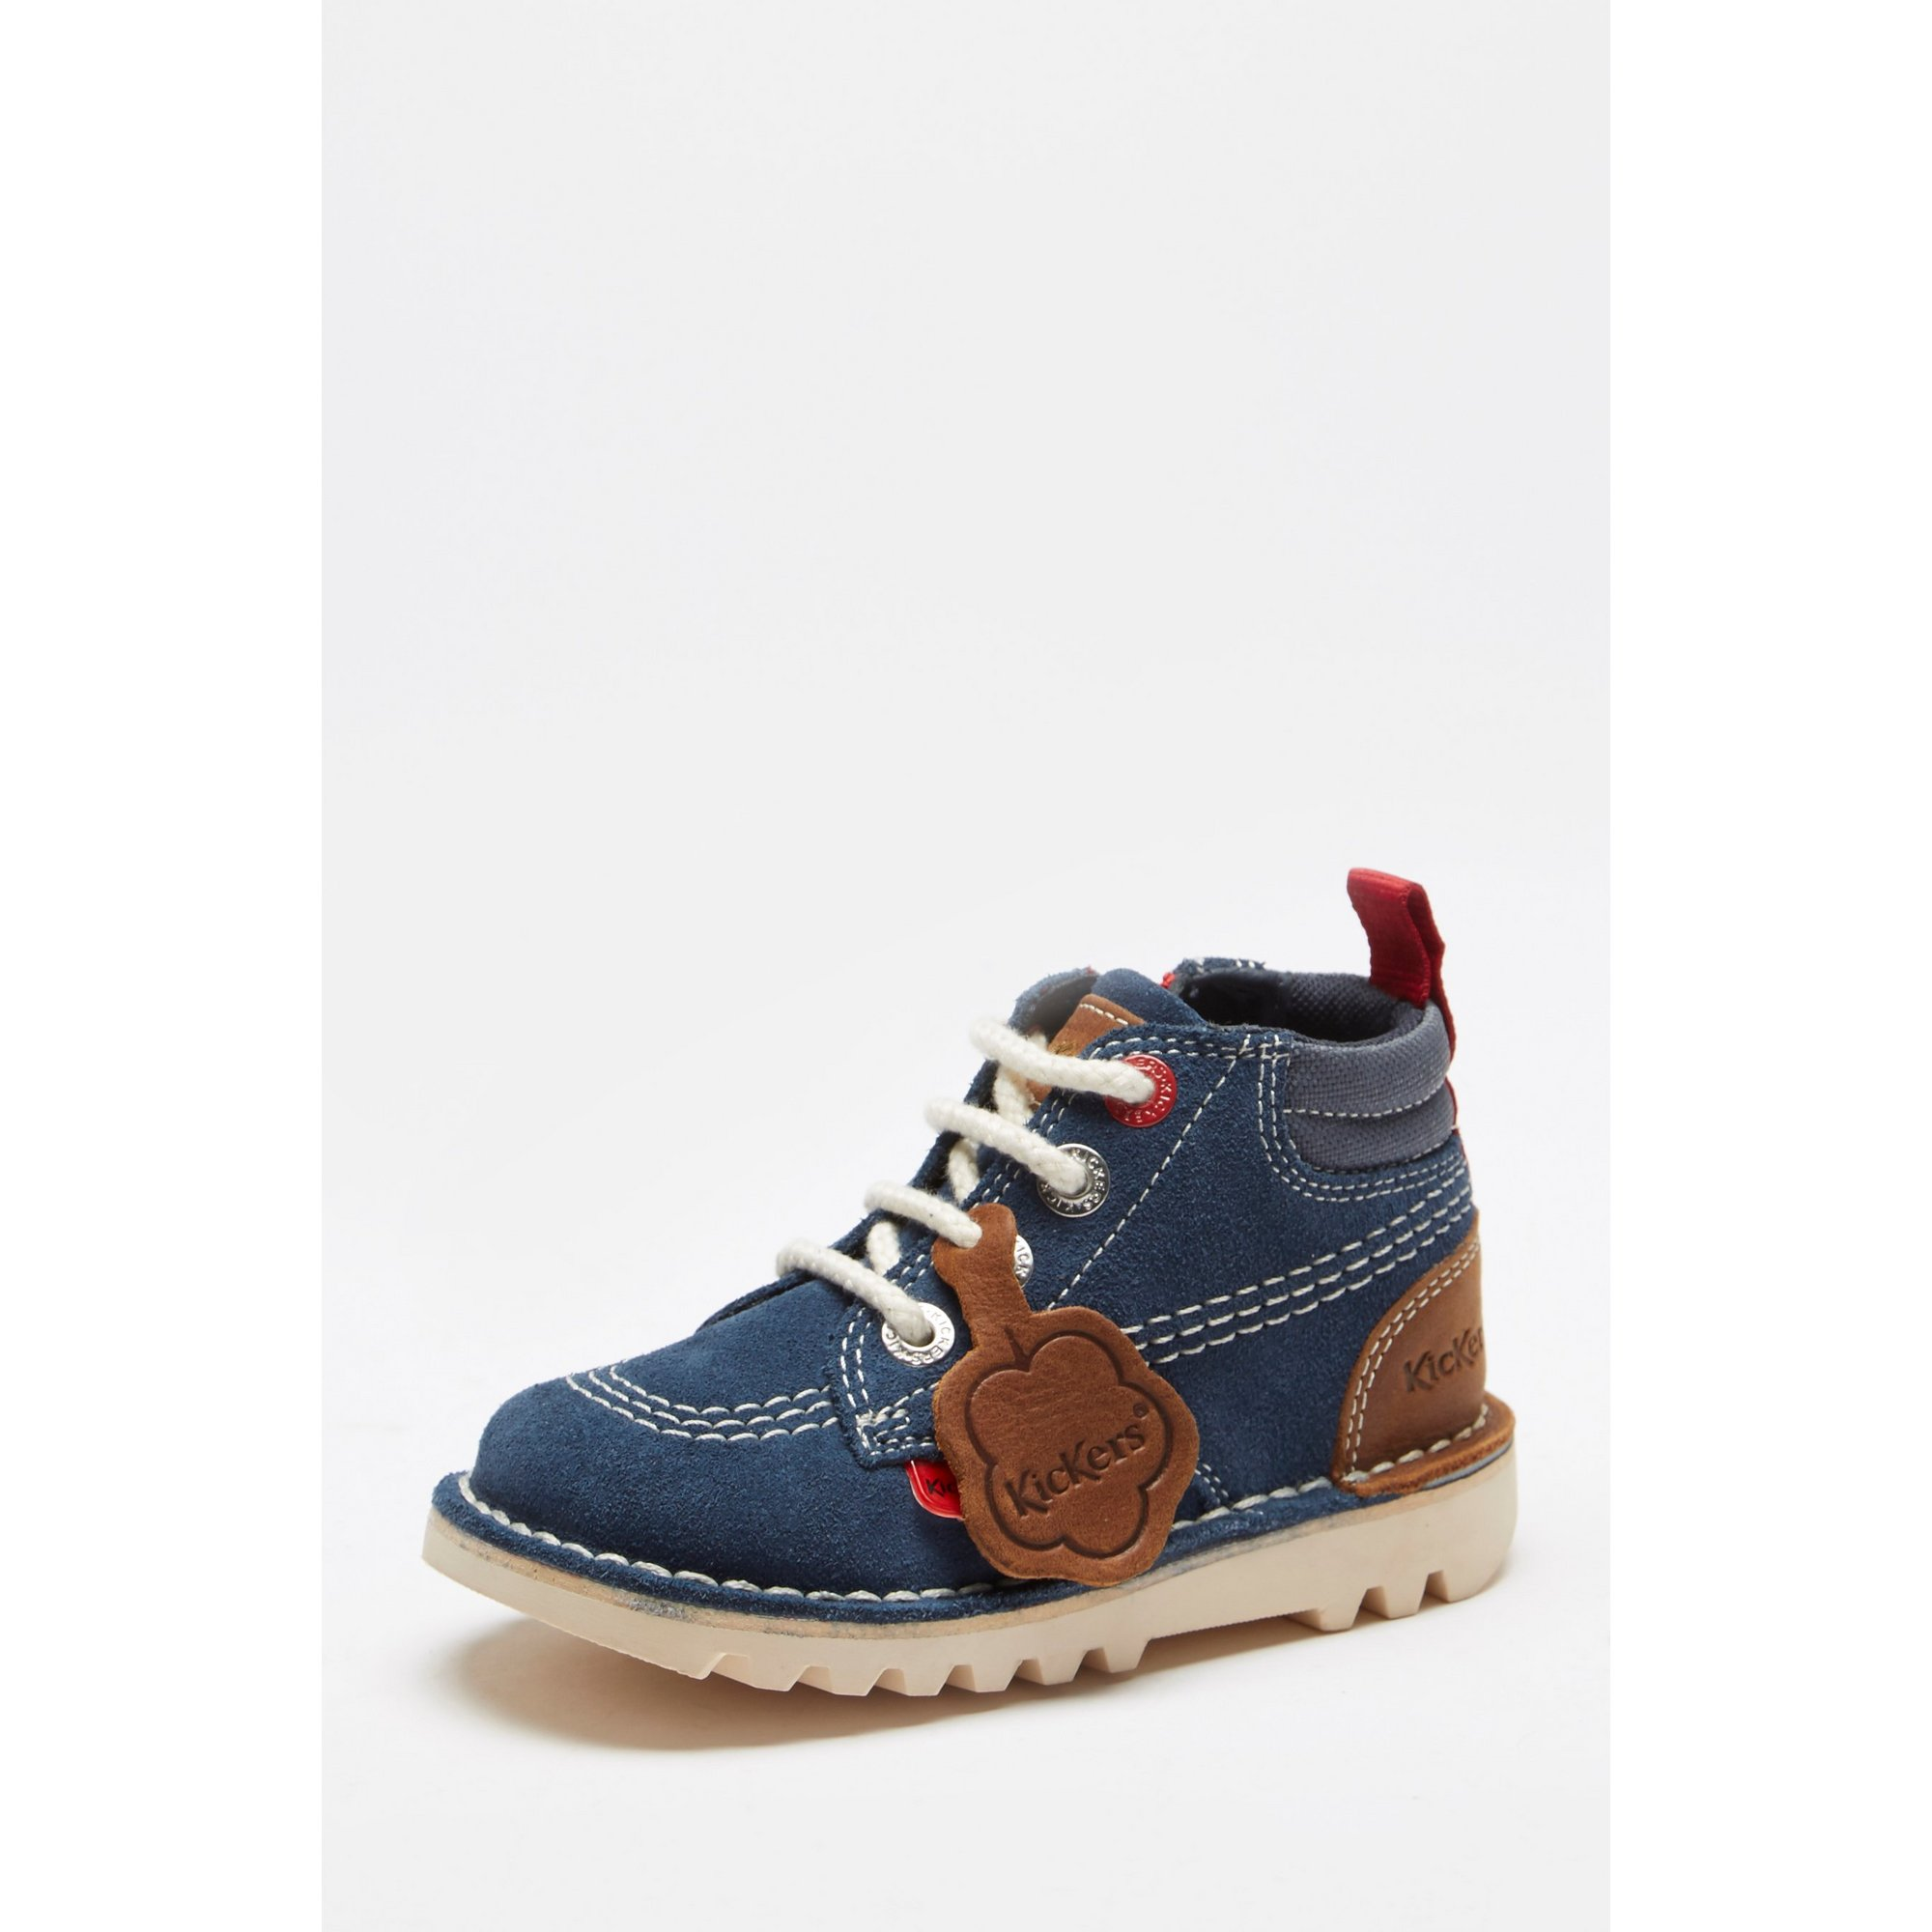 Image of Kickers Hi Stroll Boots